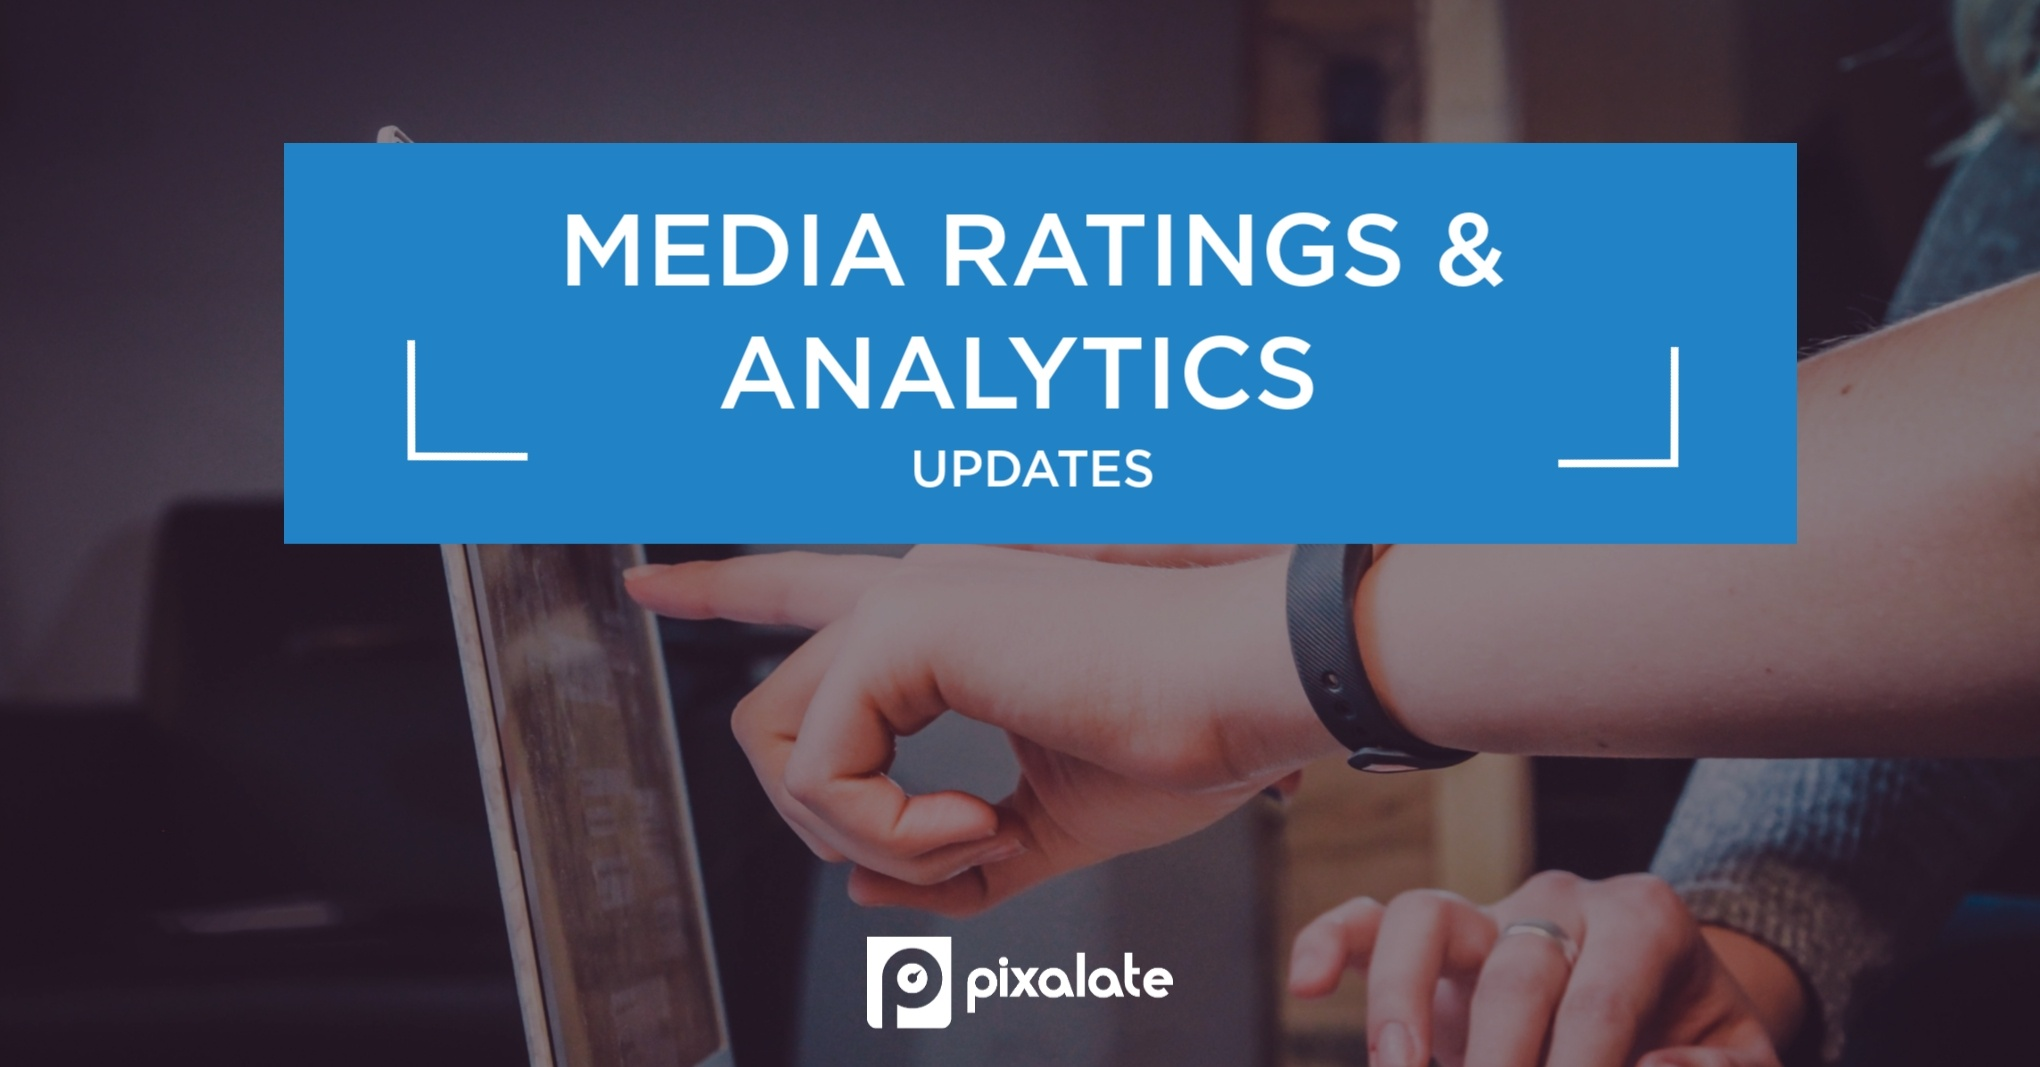 pixalate-media-ratings-analytics-dashboard-updates